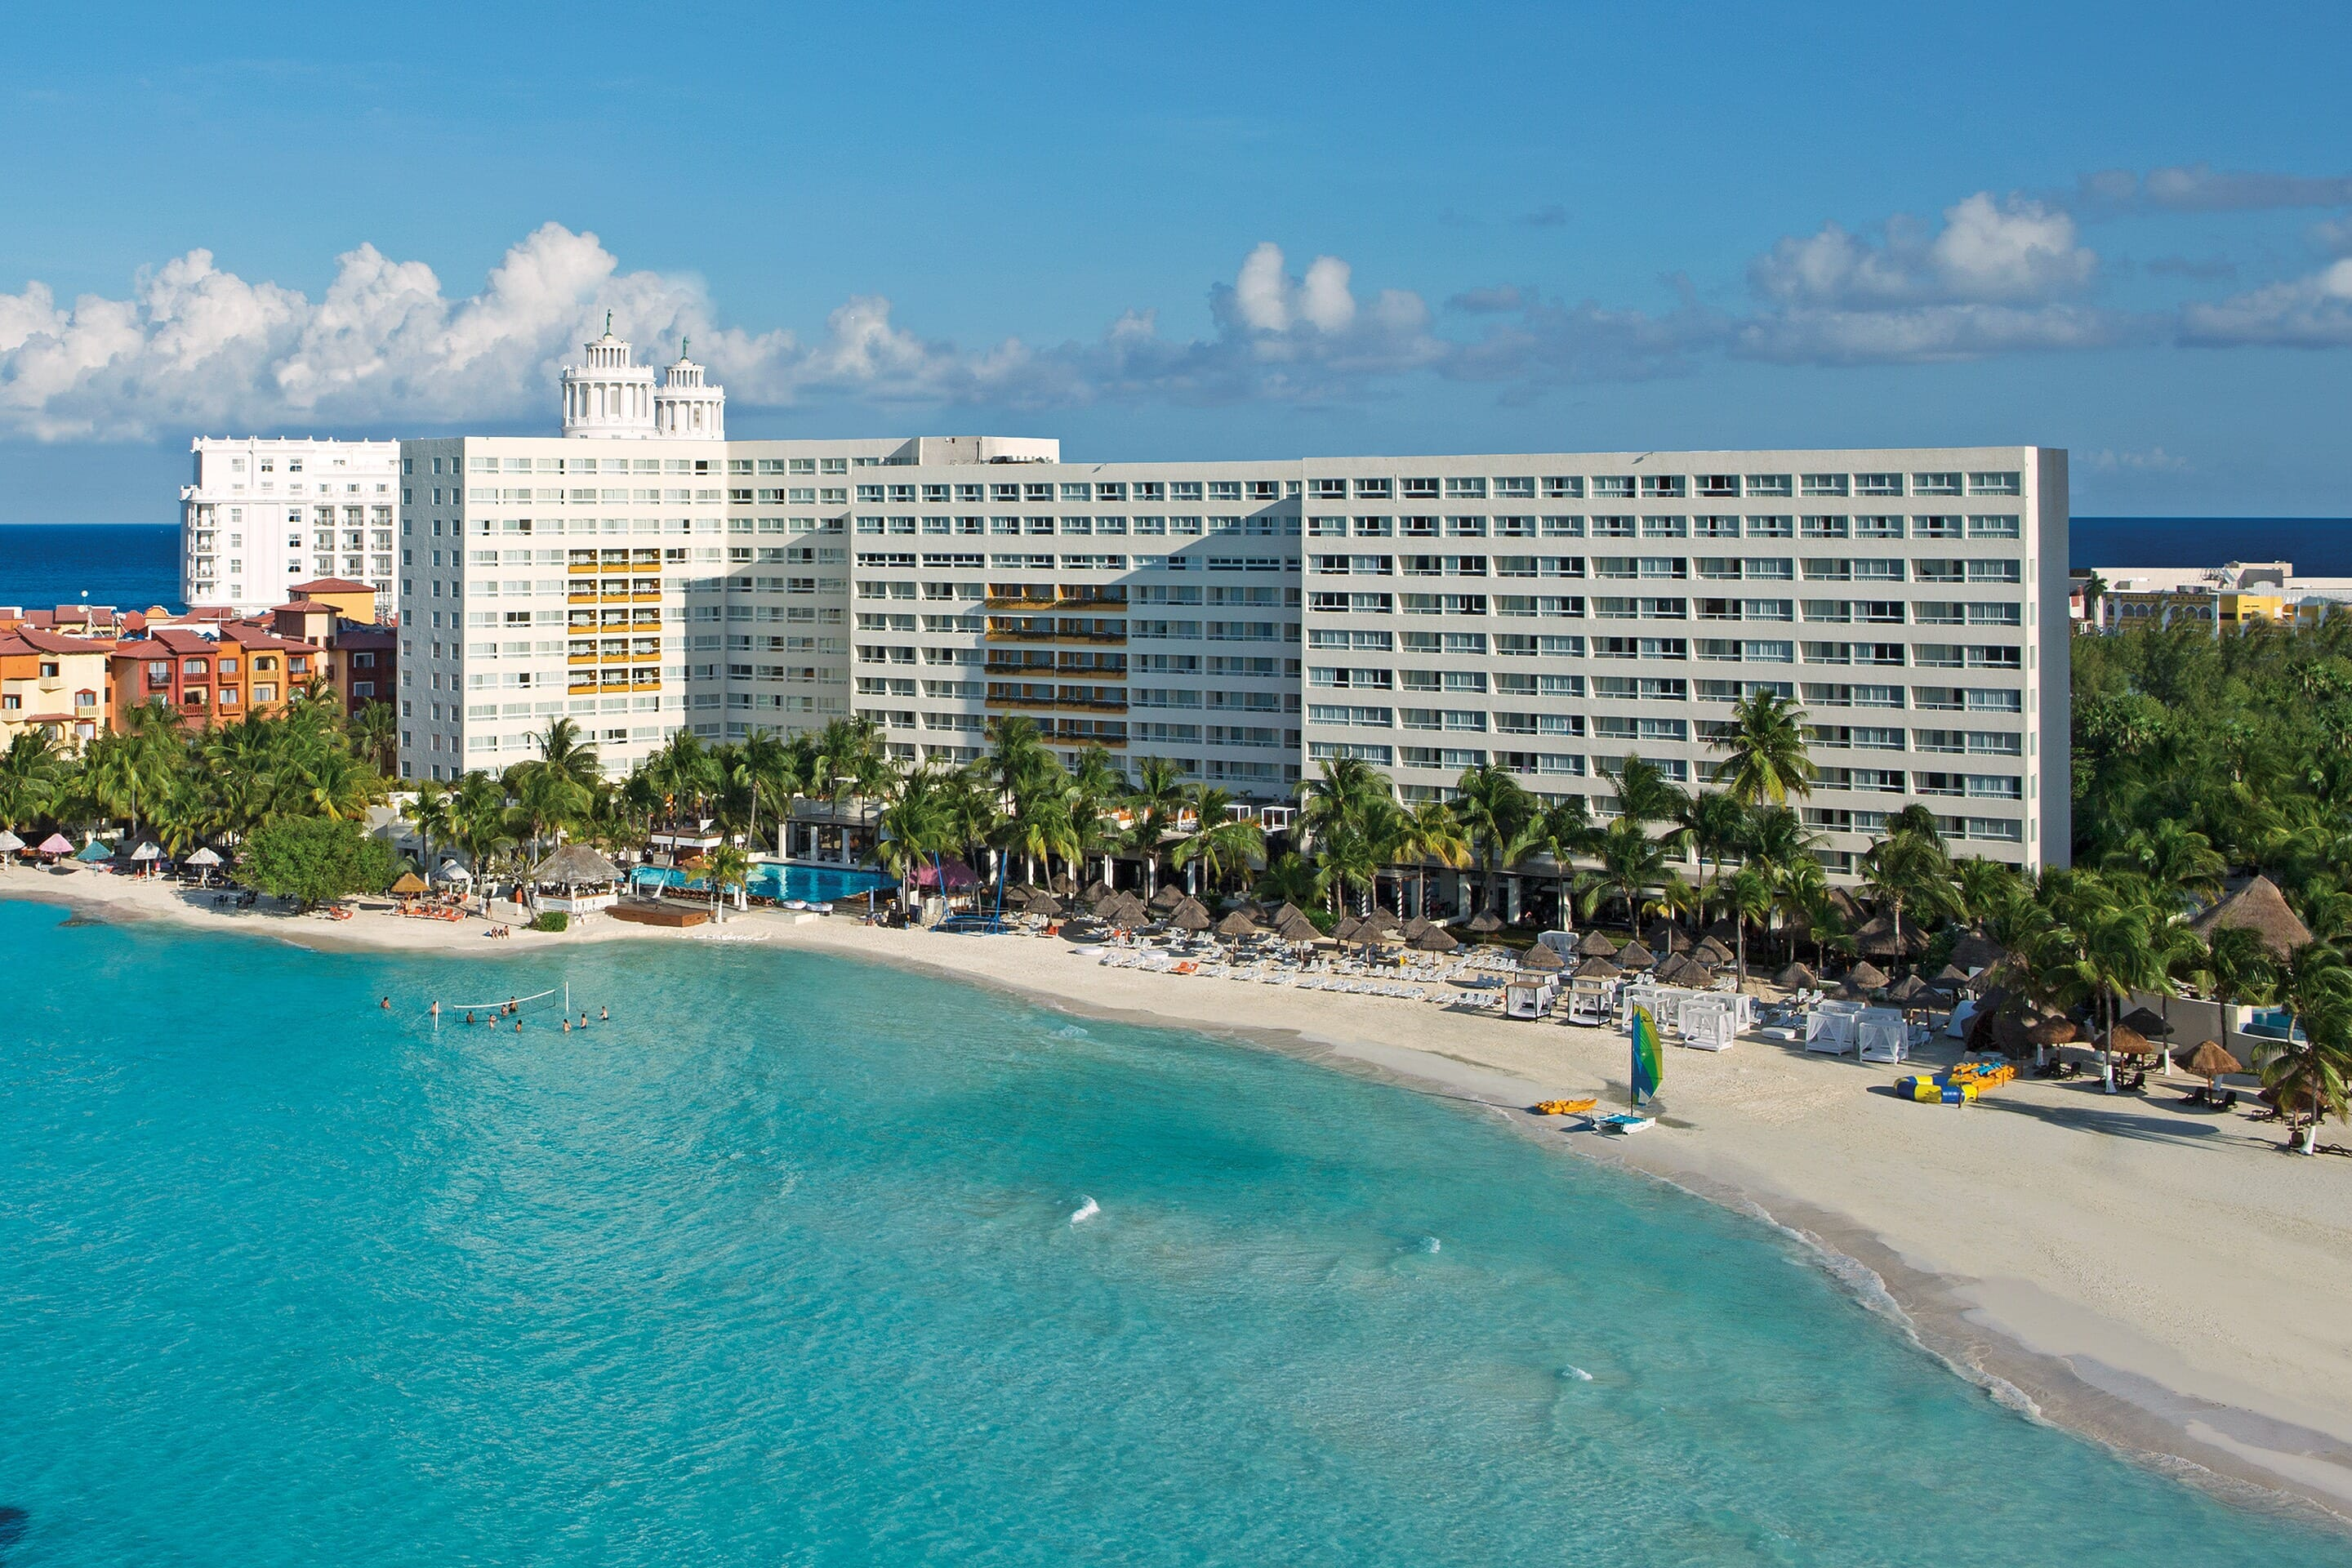 Only $1881 for (2), Dreams Sands Cancun Resort & Spa